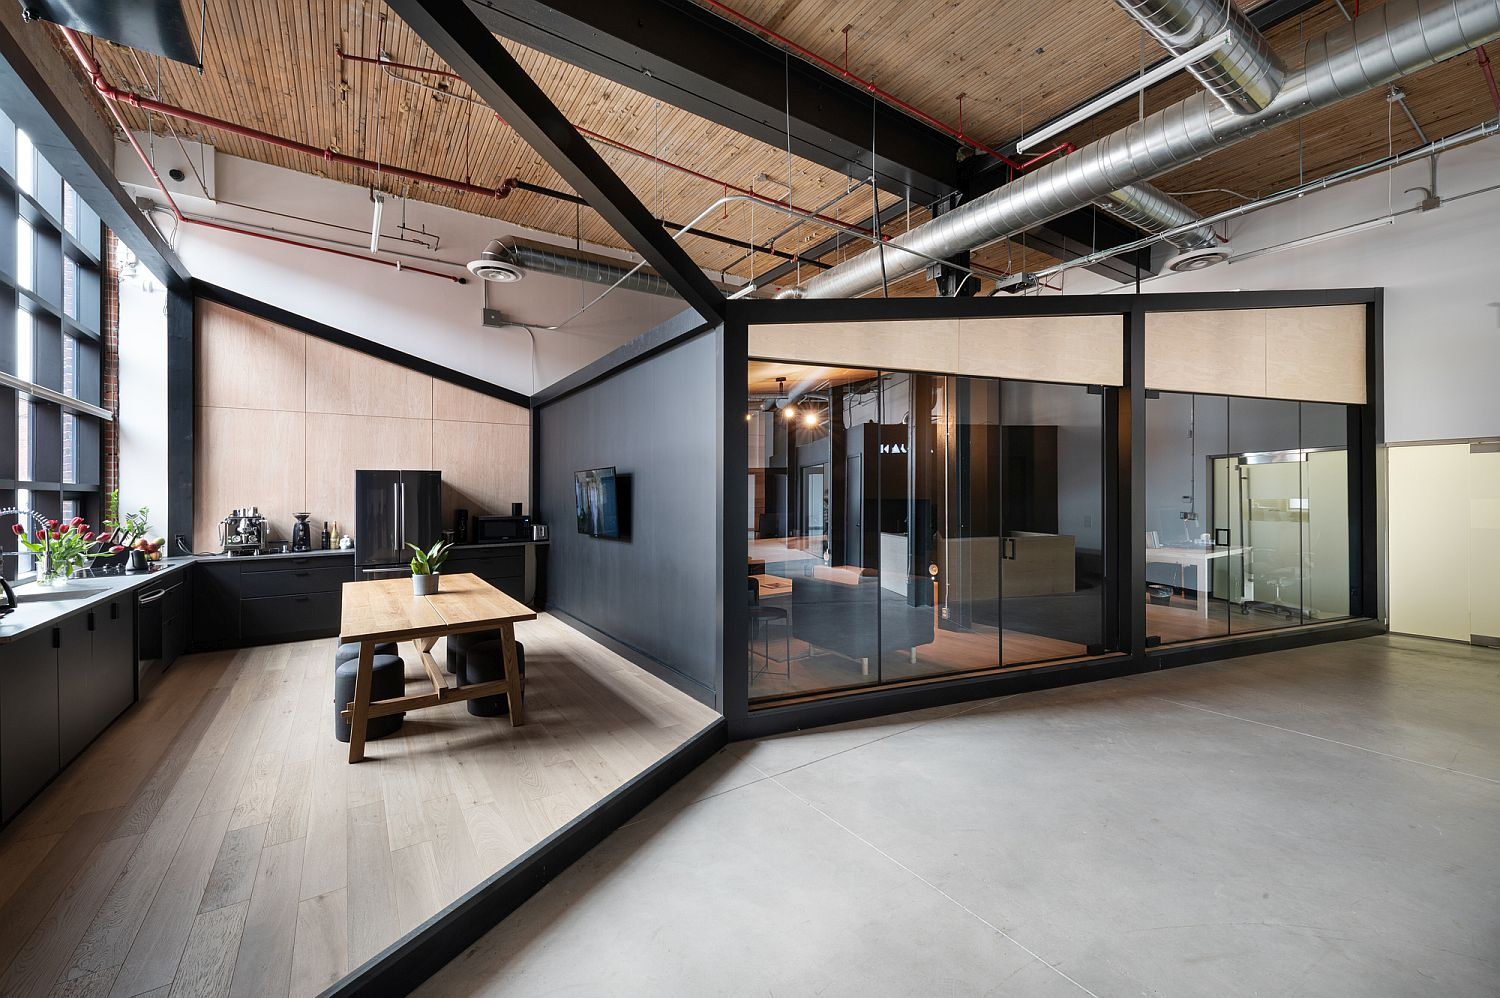 1569689349 744 office for visual effects studio combines industrial style with creative spaces - Office for Visual Effects Studio Combines Industrial Style with Creative Spaces